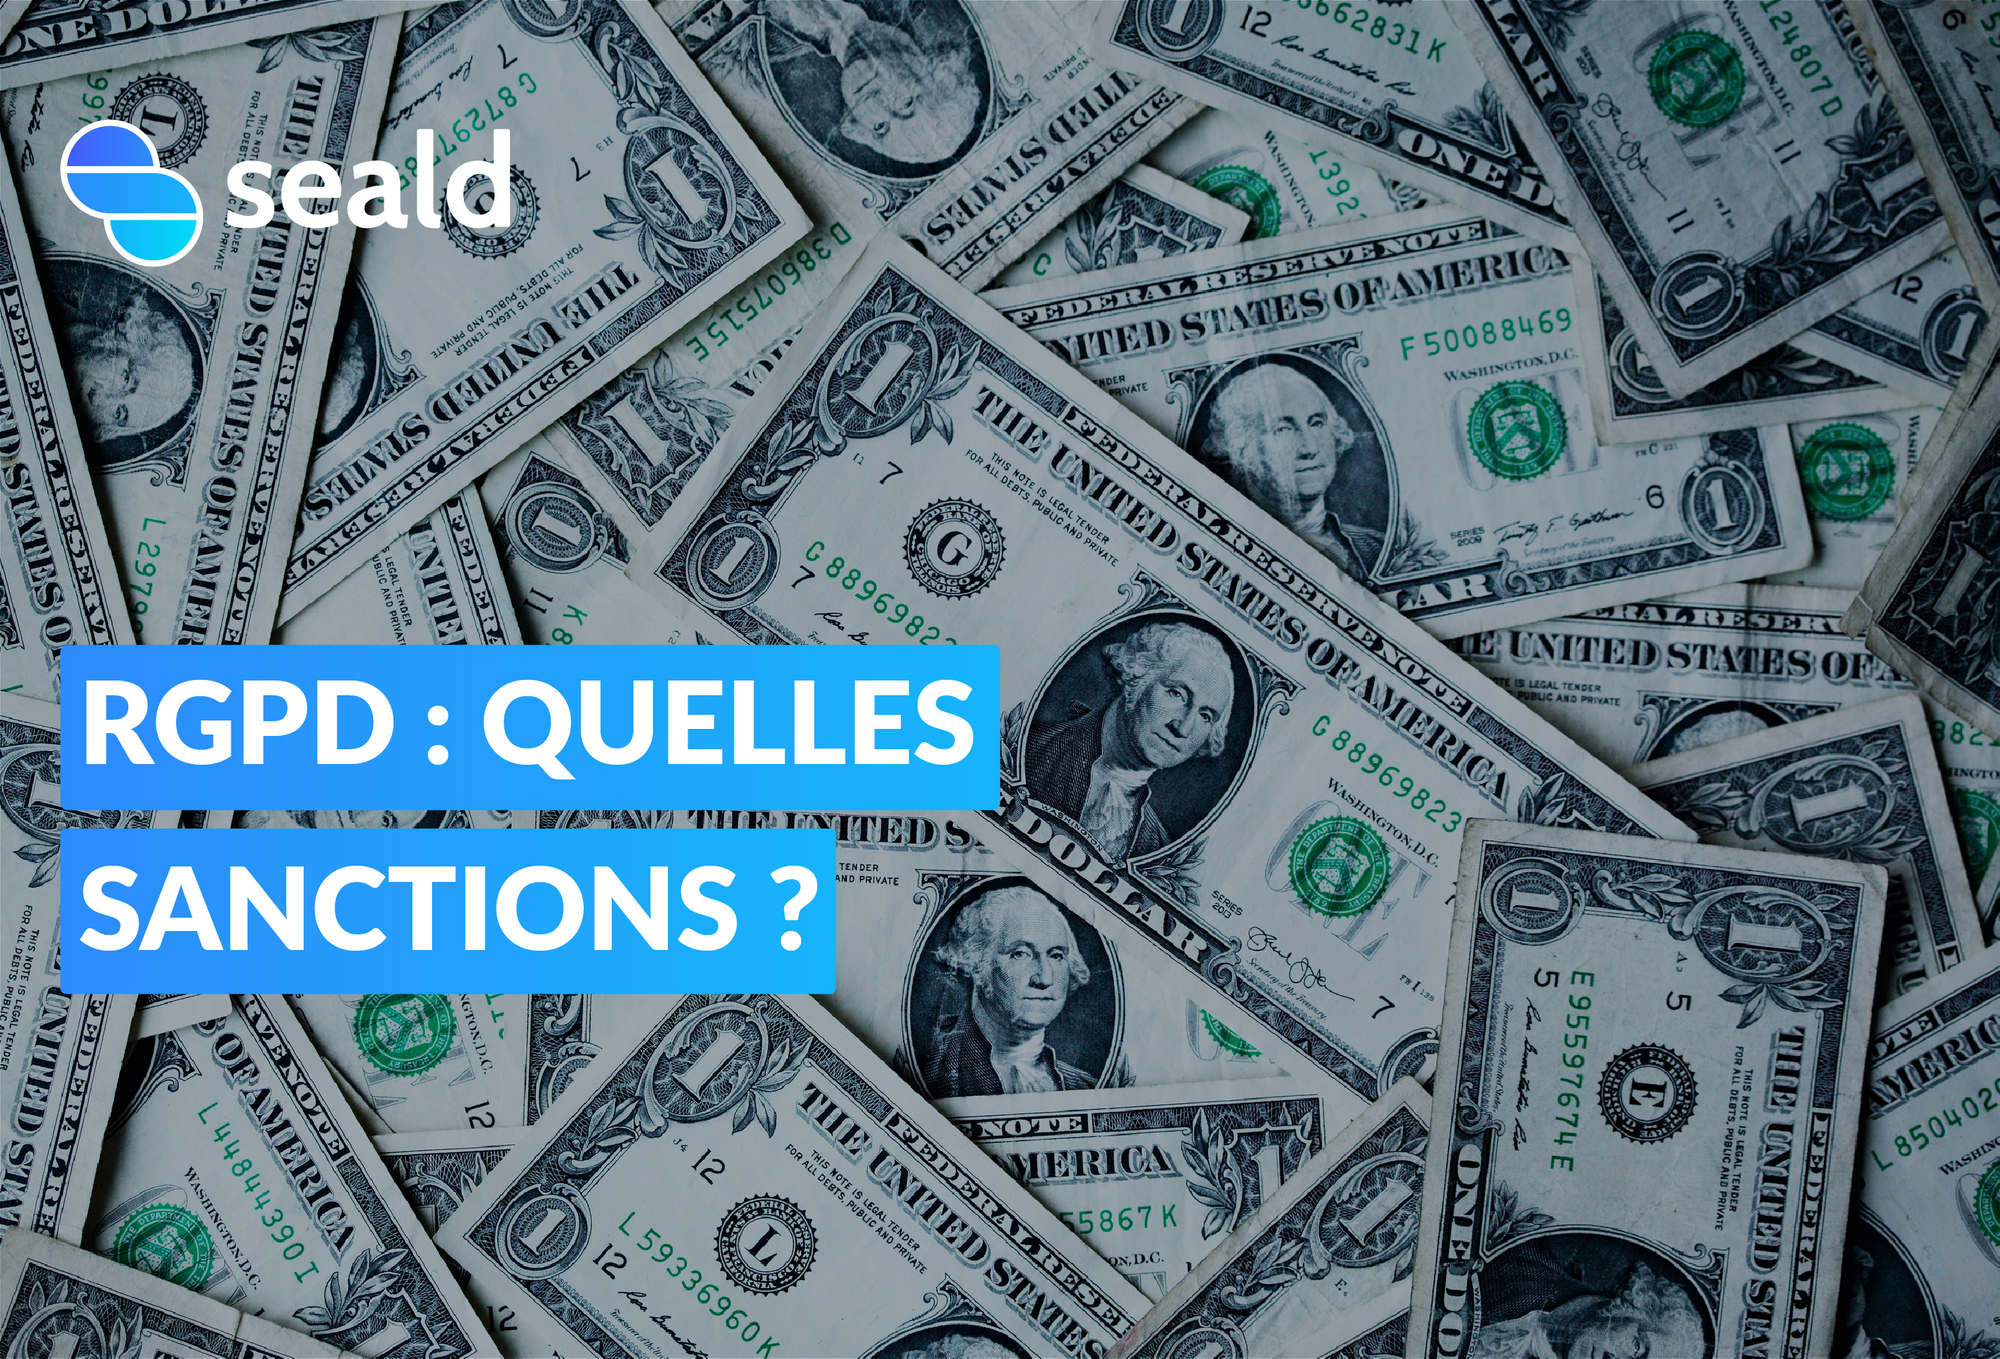 RGPD : Quelles sanctions ?